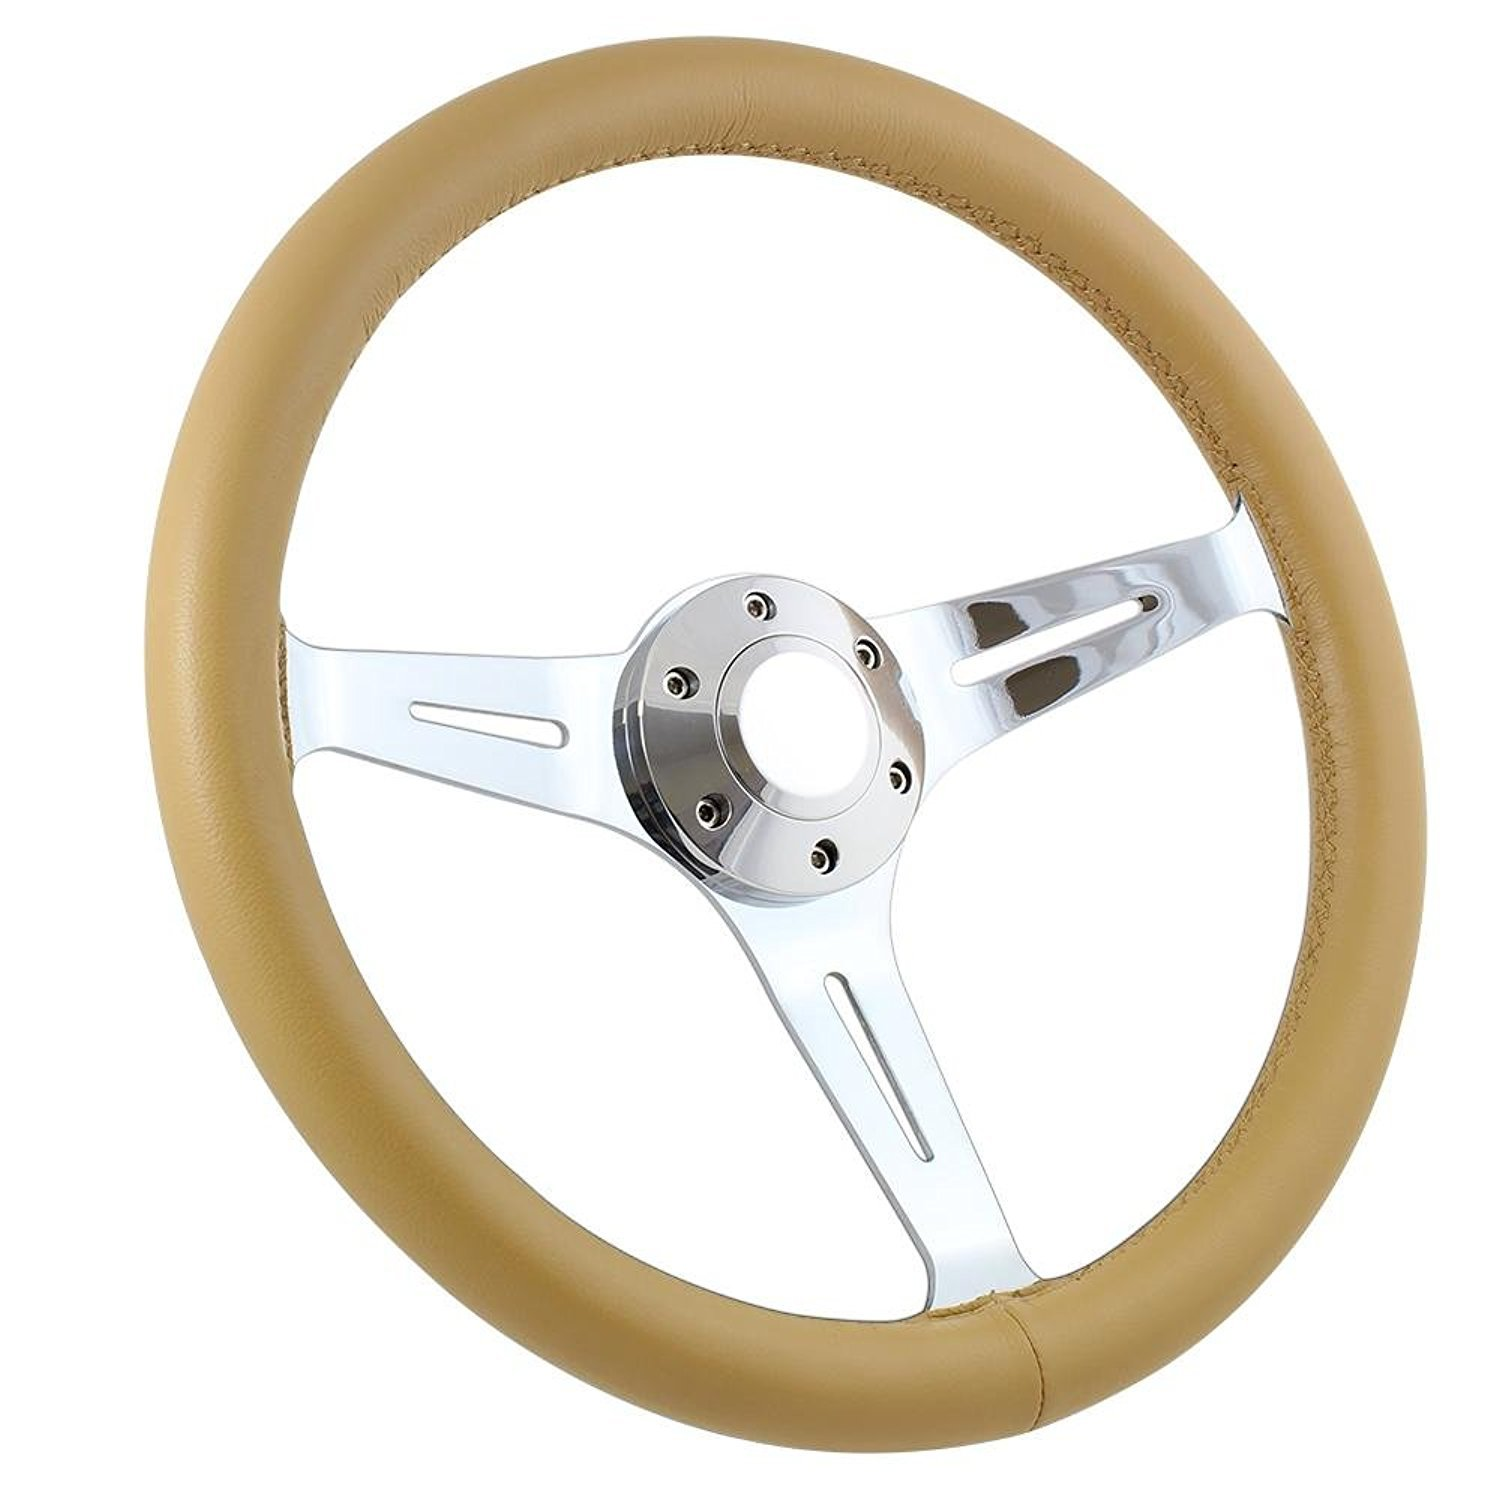 Forever Sharp Black Leather 380mm 5 Hole Steering Wheel with Chrome Spokes and Horn Button